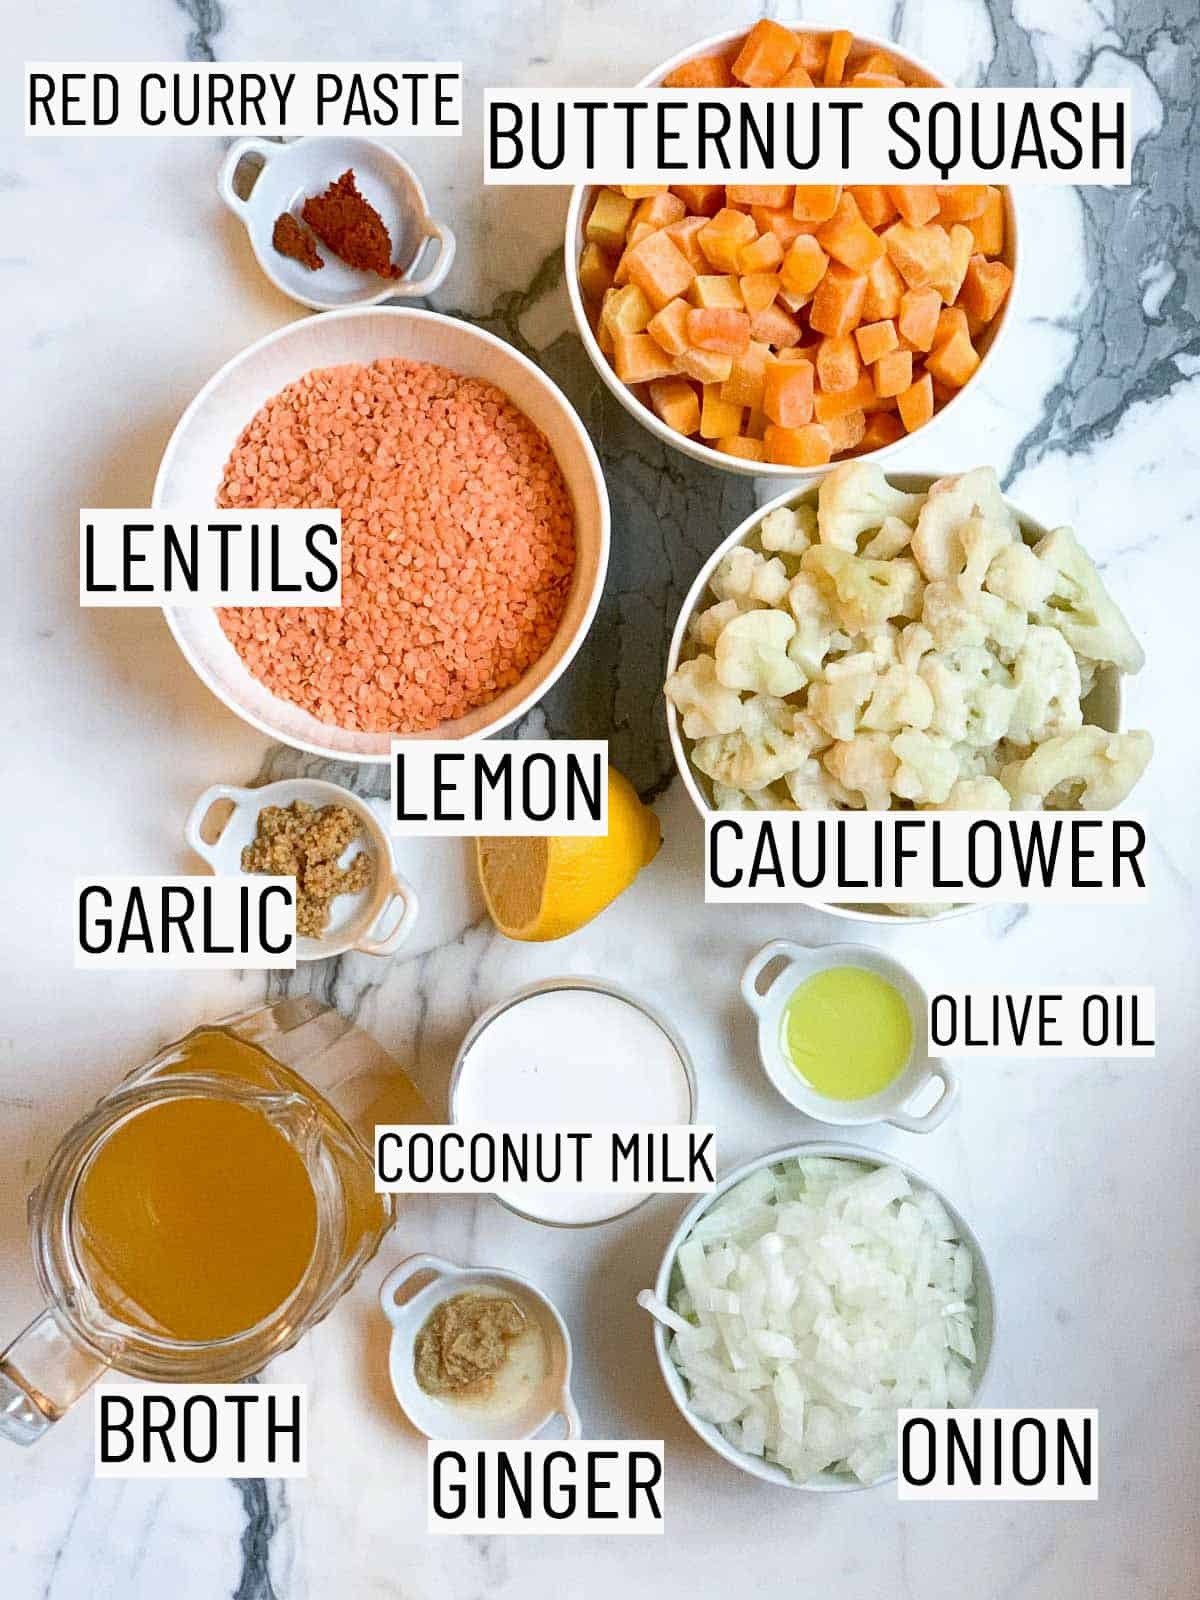 flatlay of ingredients required to make the soup: red curry paste, butternut squash, cauliflower, olive oil, lemon, lentils, garlic, coconut milk, onion, ginger, and broth.